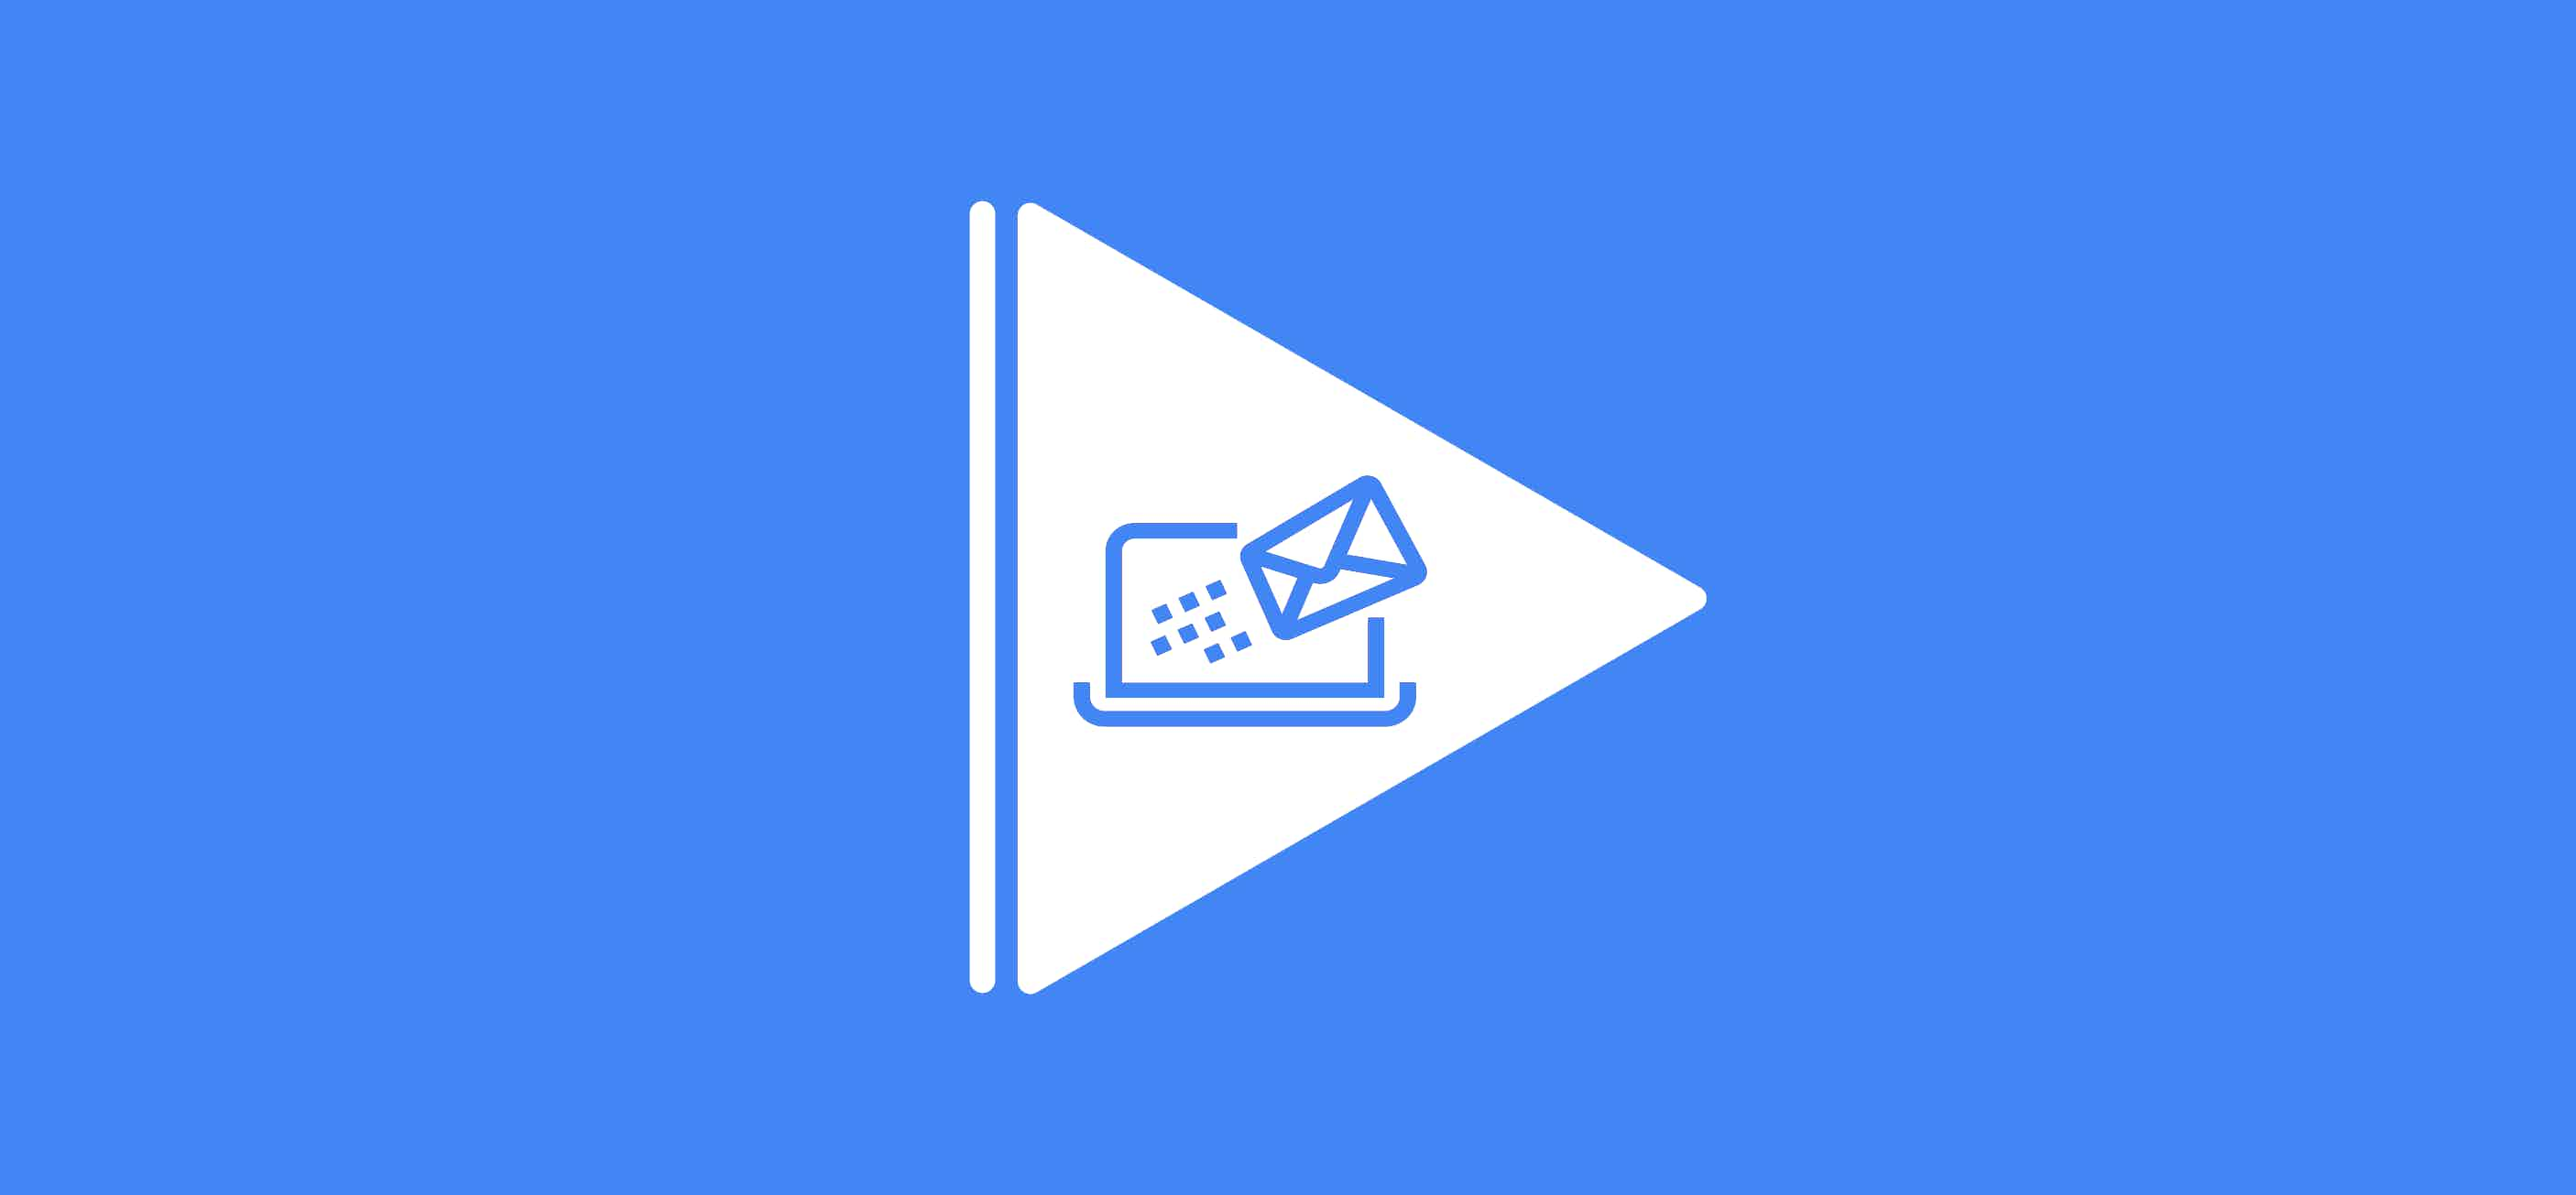 Email and CRM